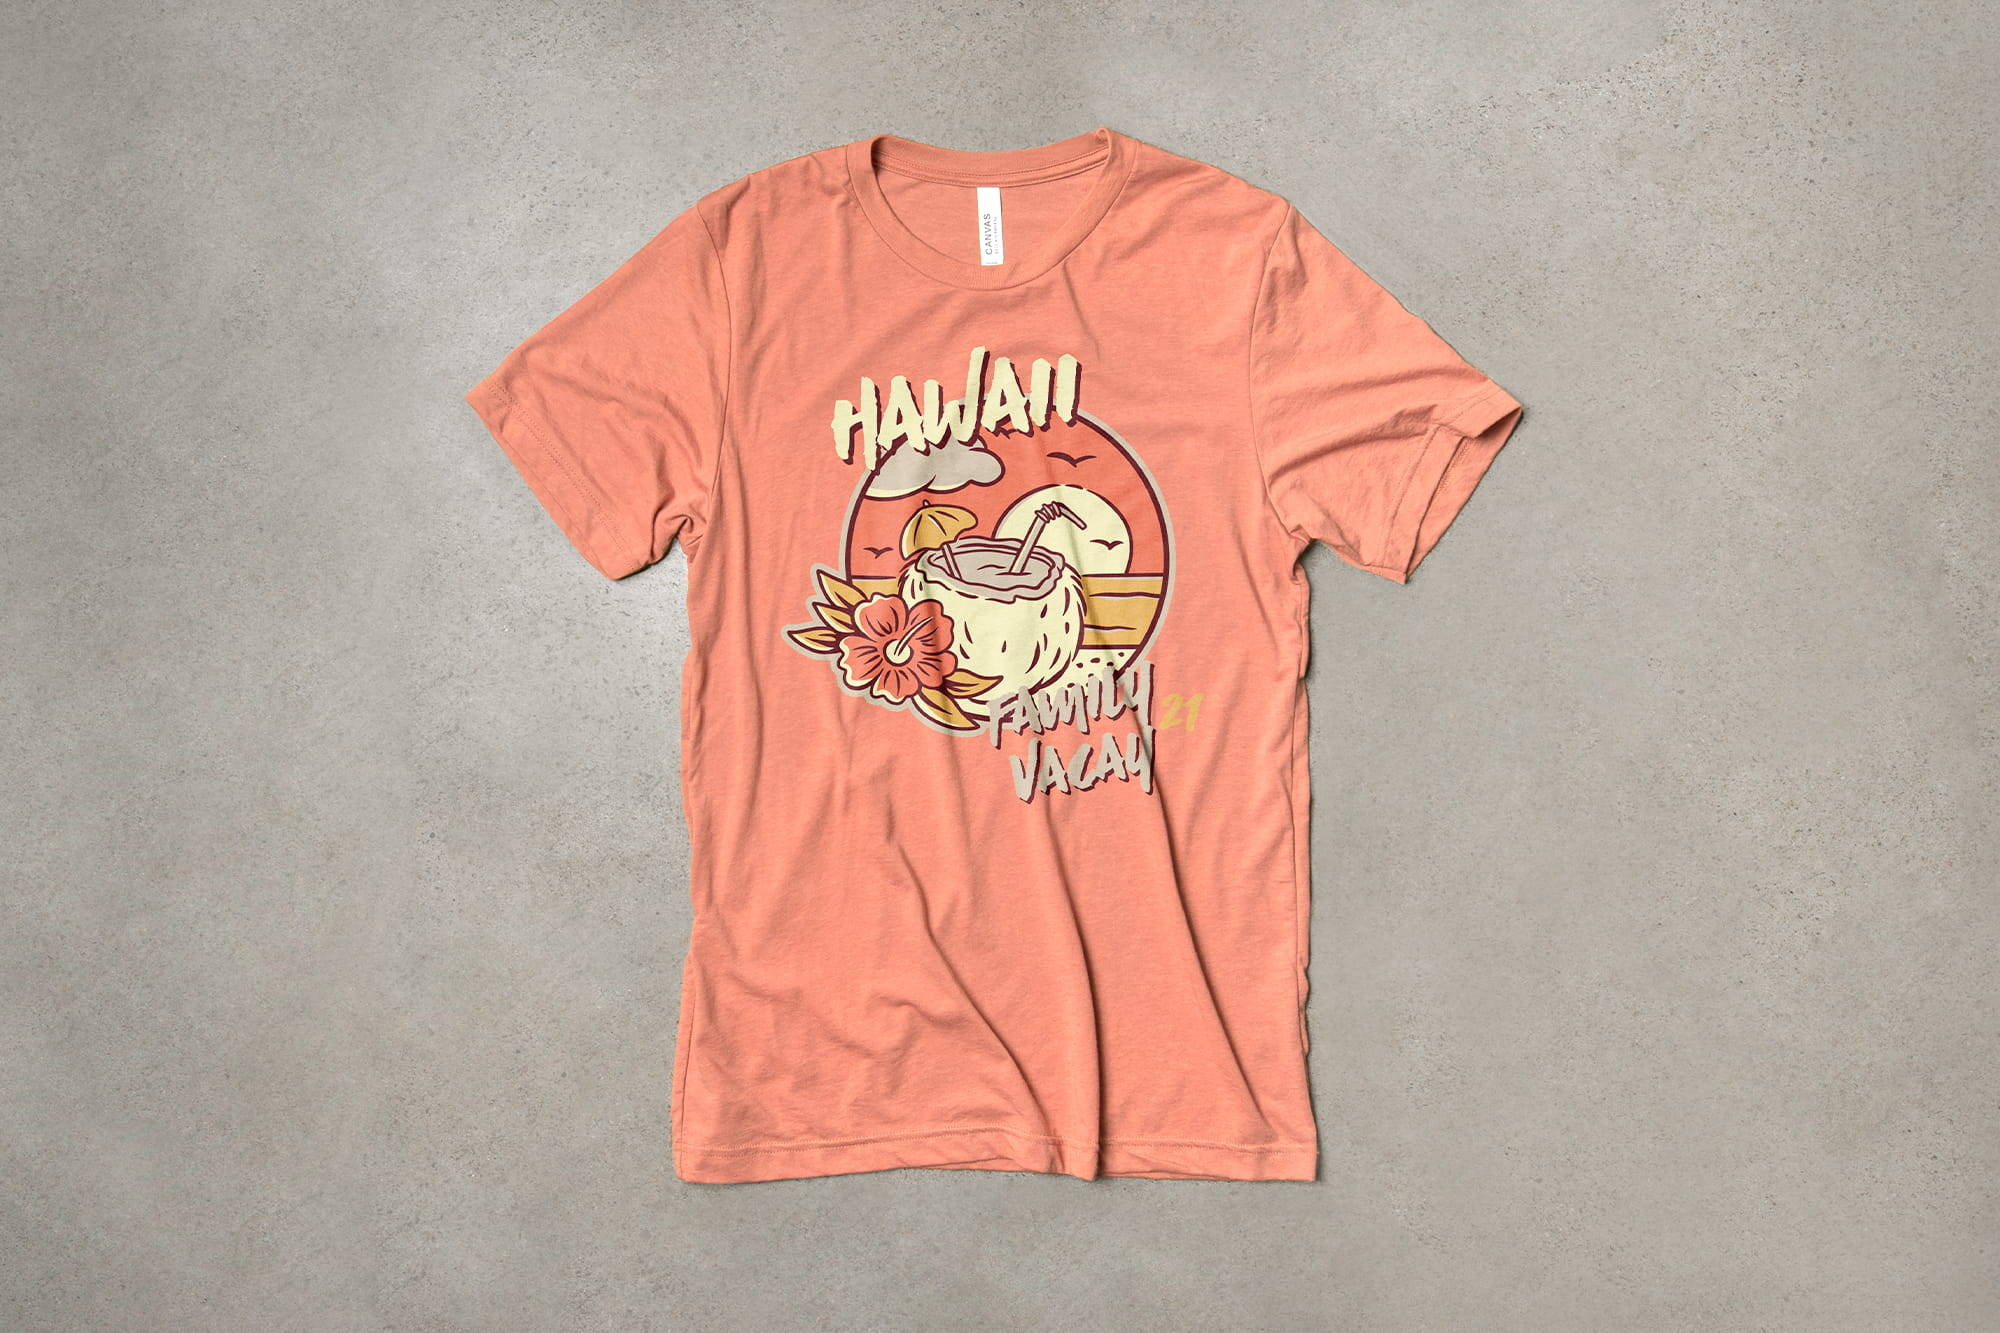 Example of warm t-shirt design.